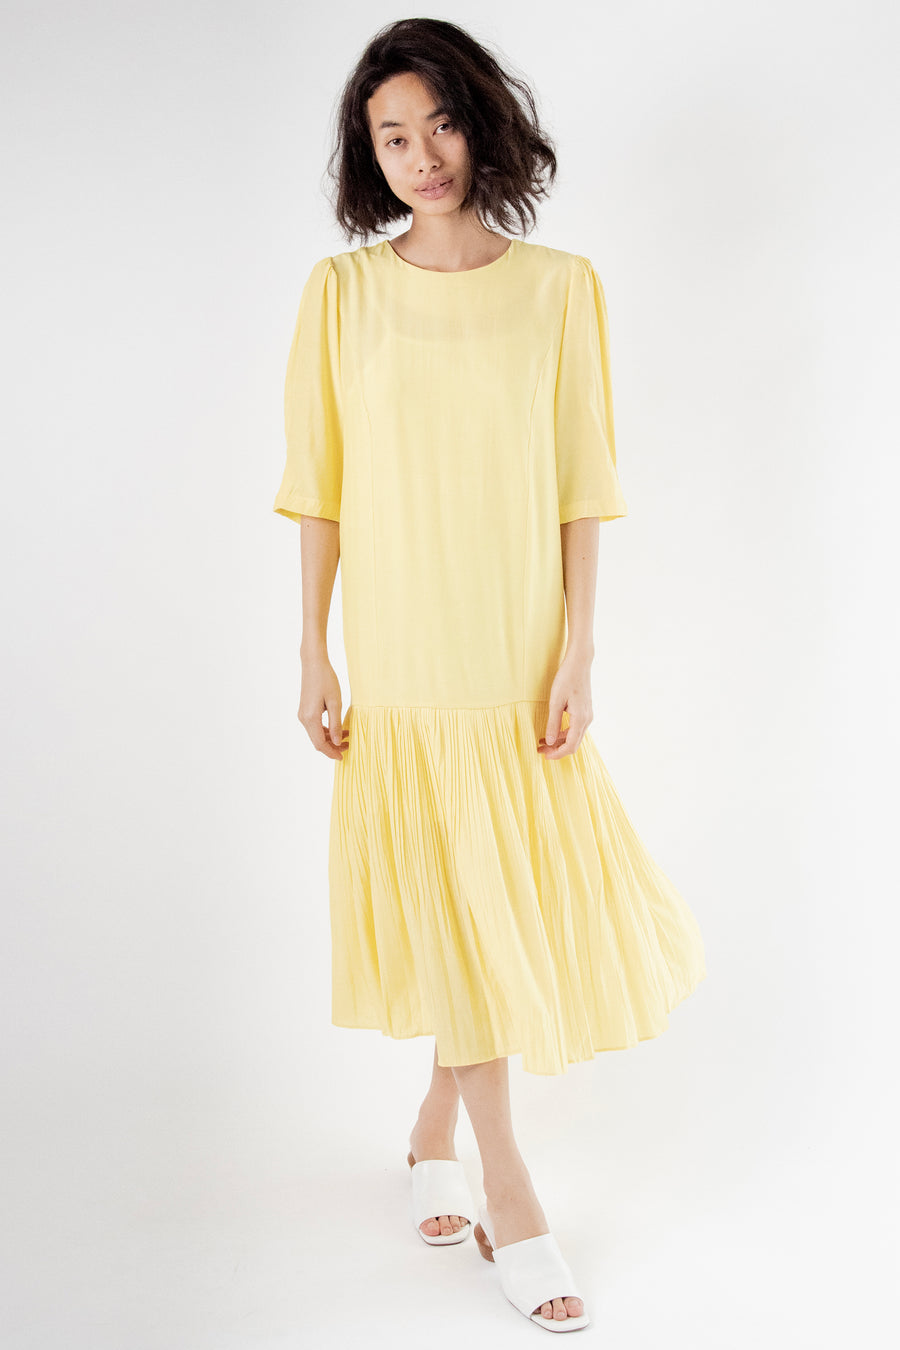 Yellow Dress Agnes